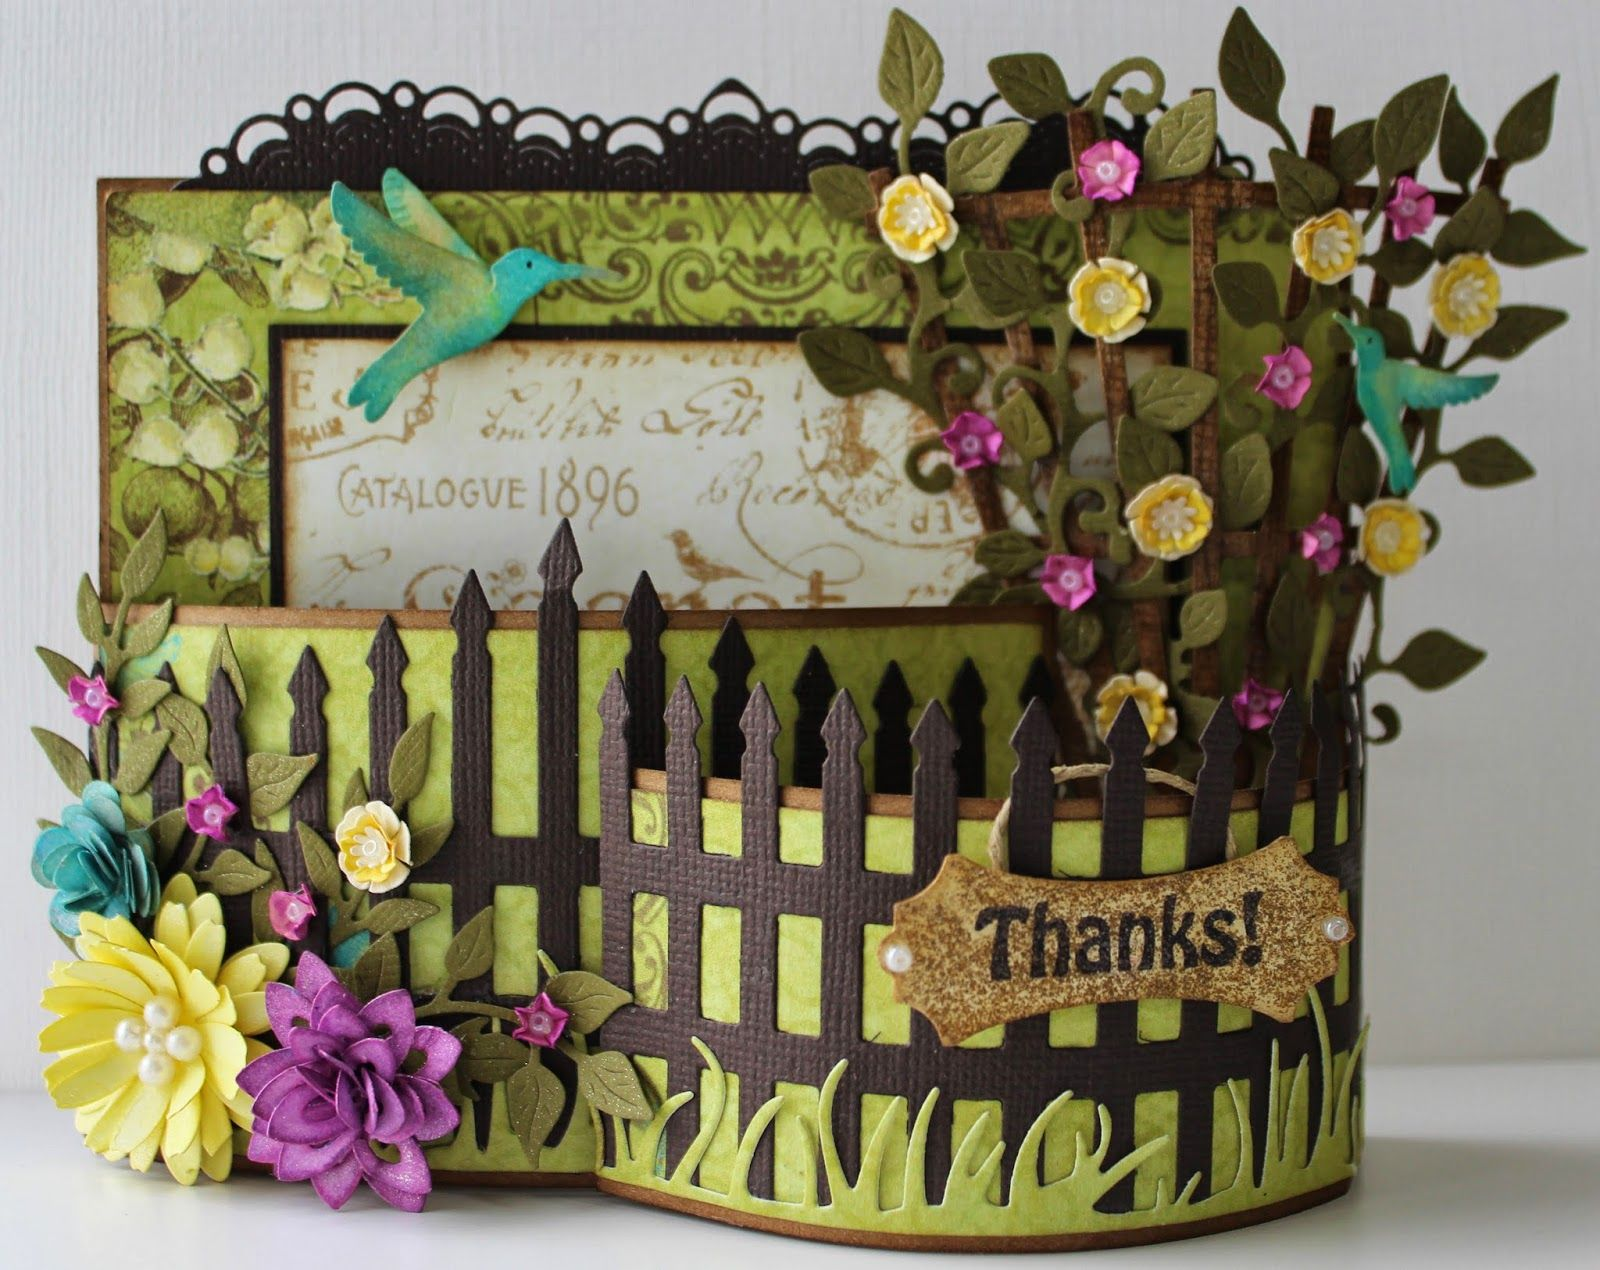 Corina Finley, author of the Cherry Lynn Designs Blog, designed this garden gate card.